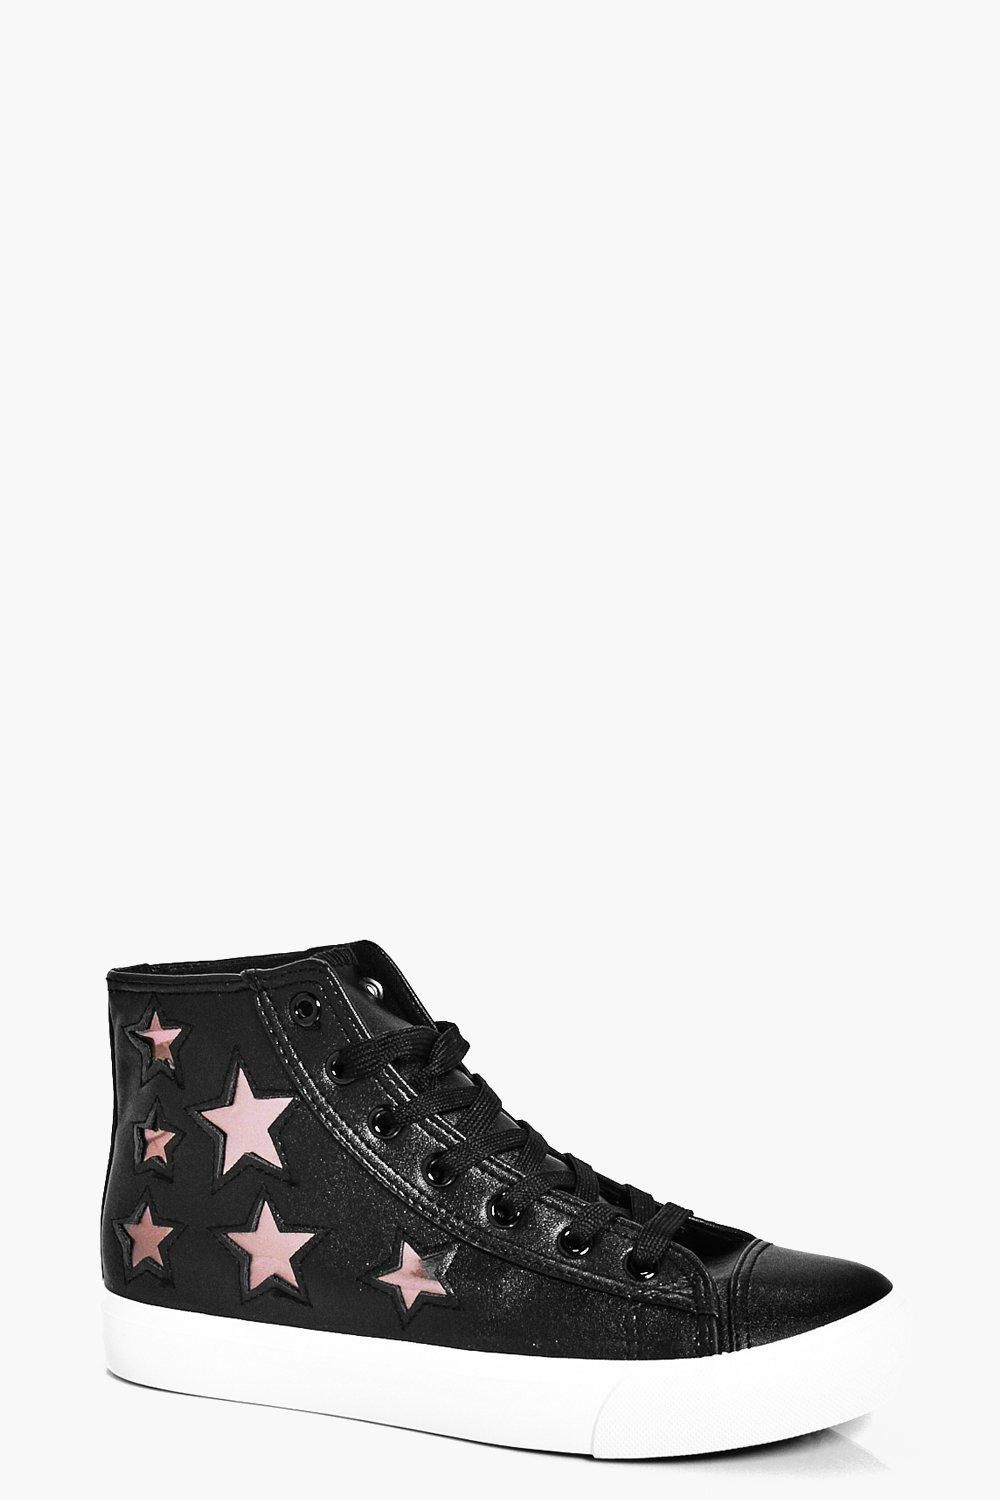 Eve Star High Top Trainer